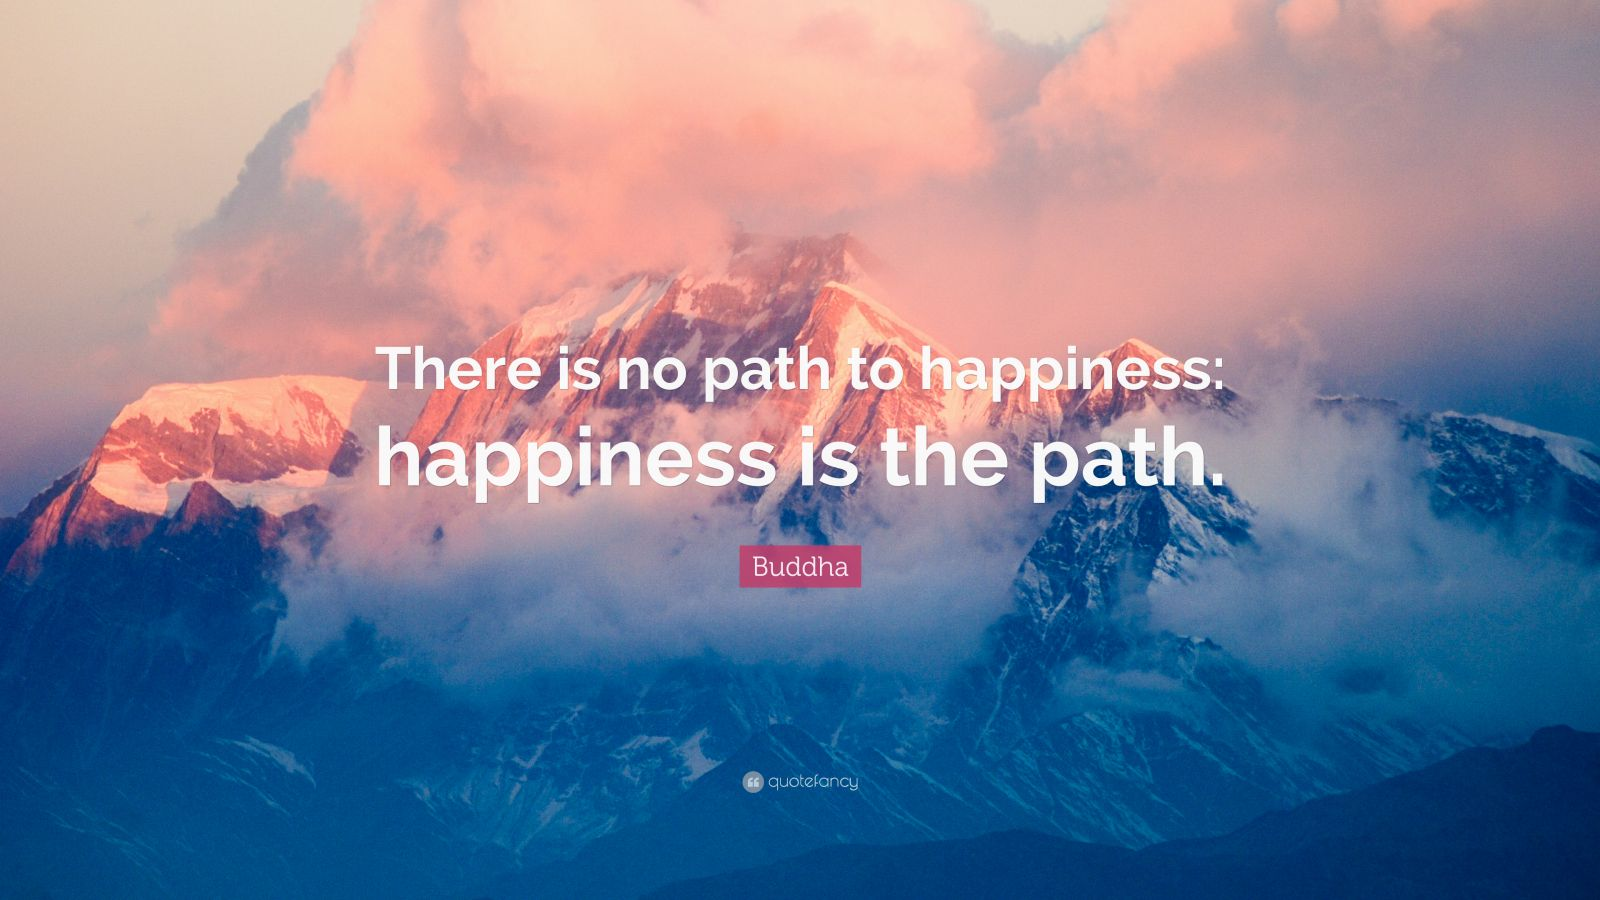 Moving On Quotes Wallpaper Buddha Quote There Is No Path To Happiness Happiness Is